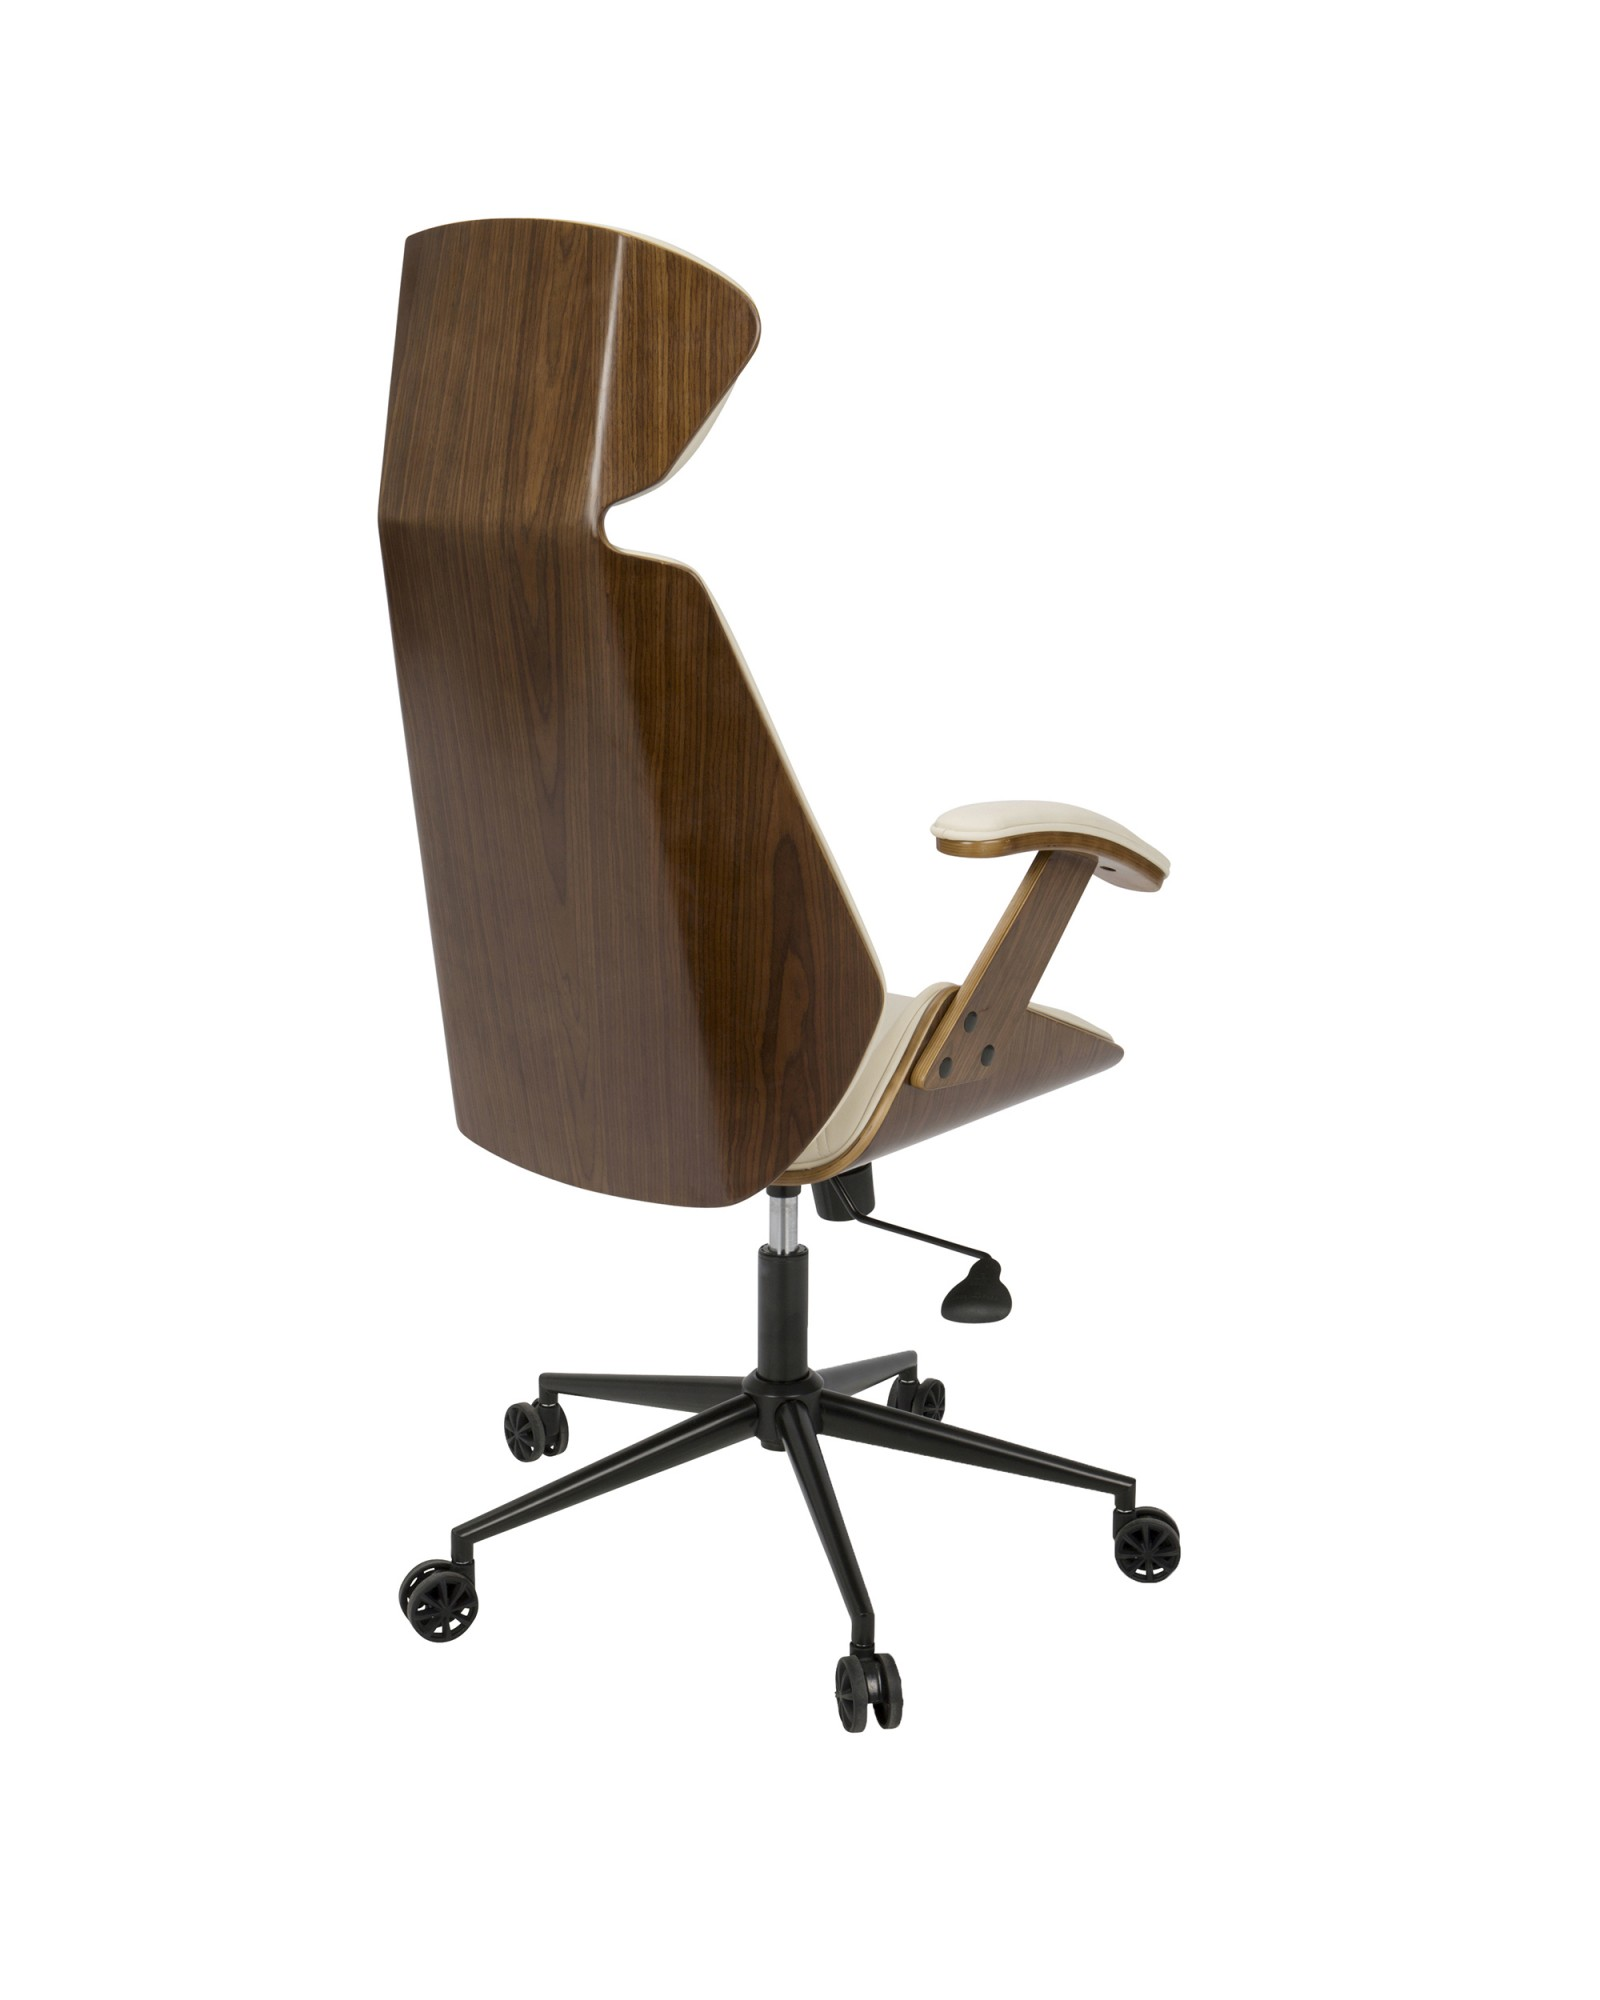 Spectre Mid-Century Modern Adjustable Office Chair in Walnut Wood and Cream Faux Leather